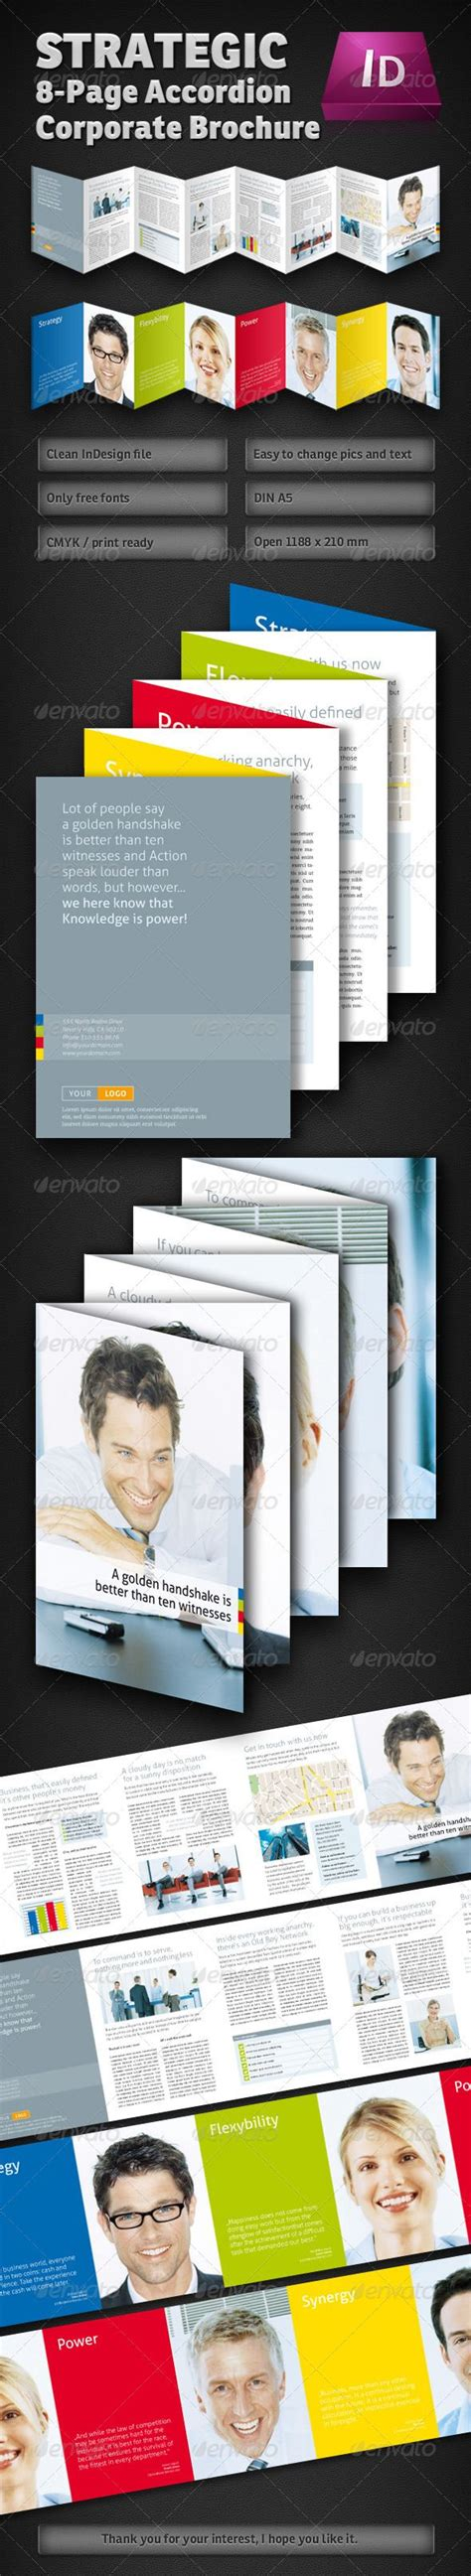 Accordion Brochure Templates Designtube Creative 25 Best Ideas About Accordion Fold On Small